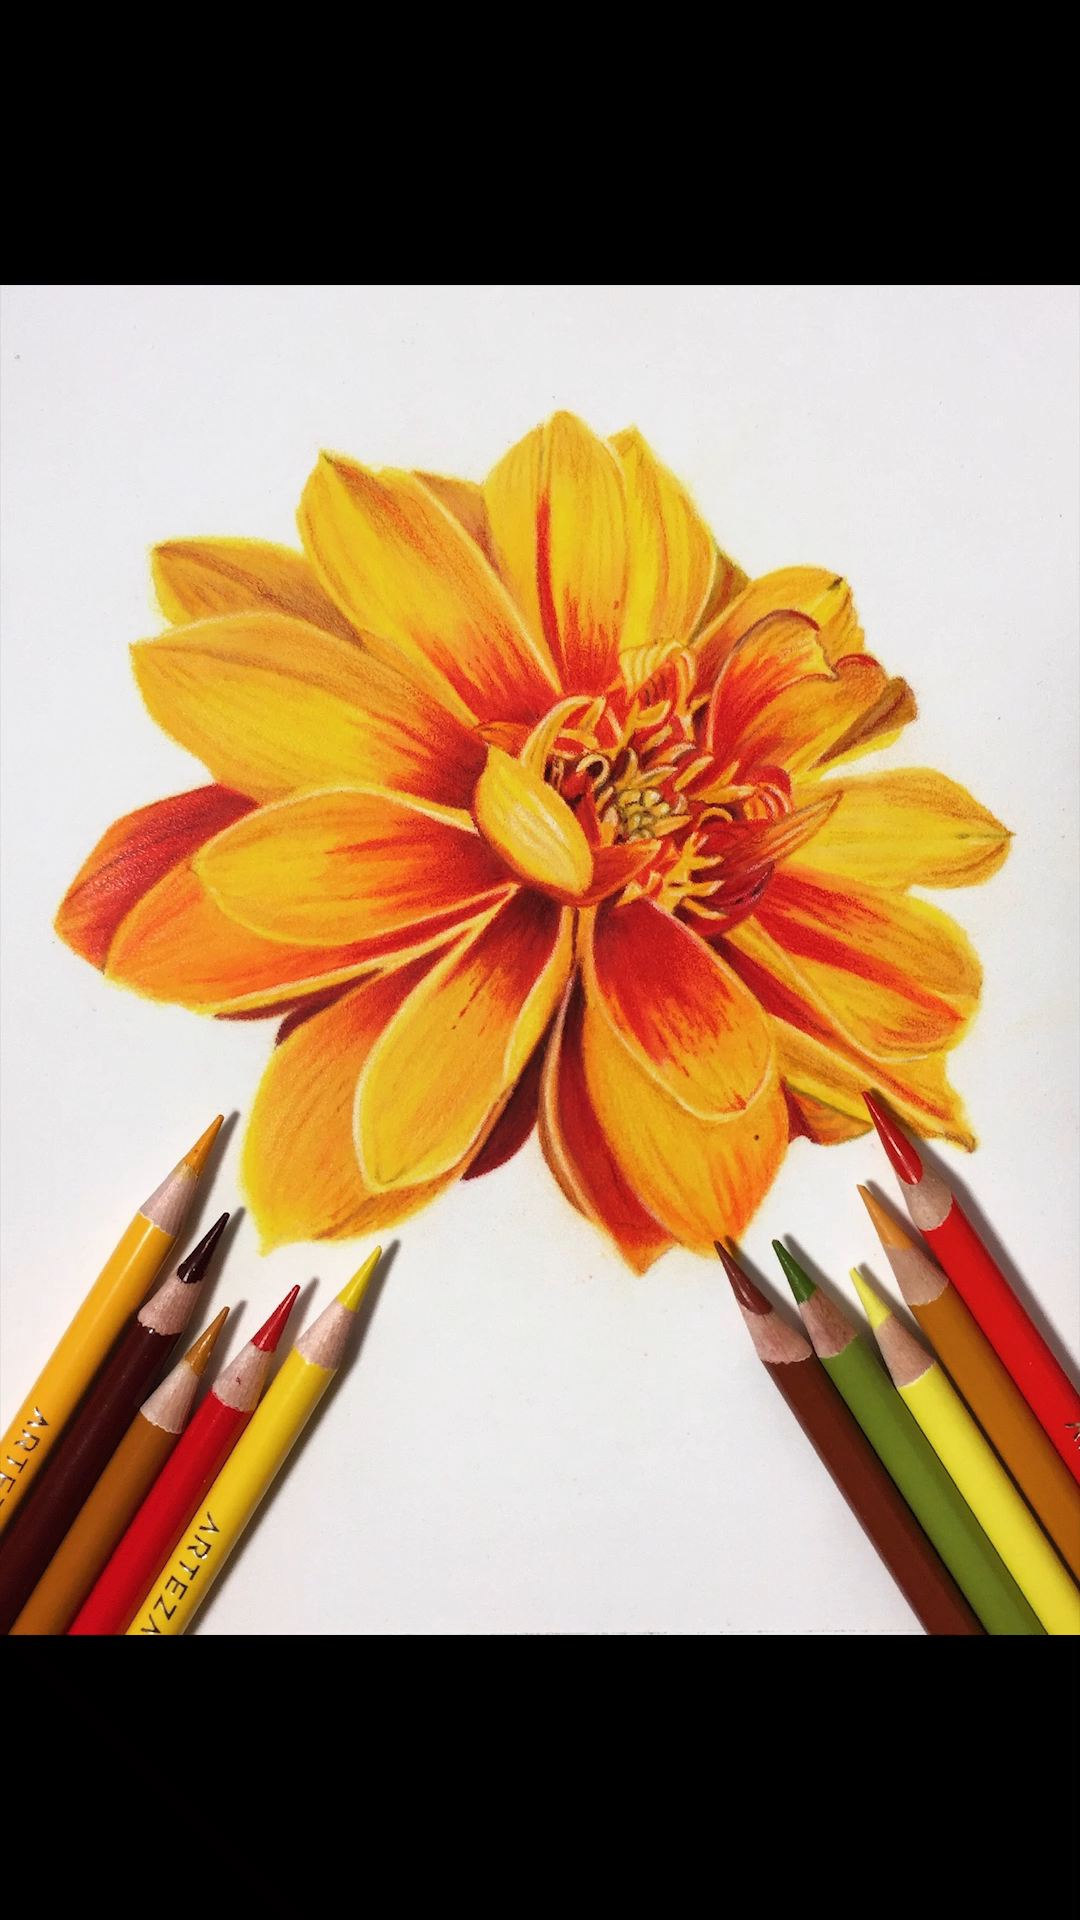 Jennifer Morrison Art is creating Botanical Colored Pencil Drawing Tutorials